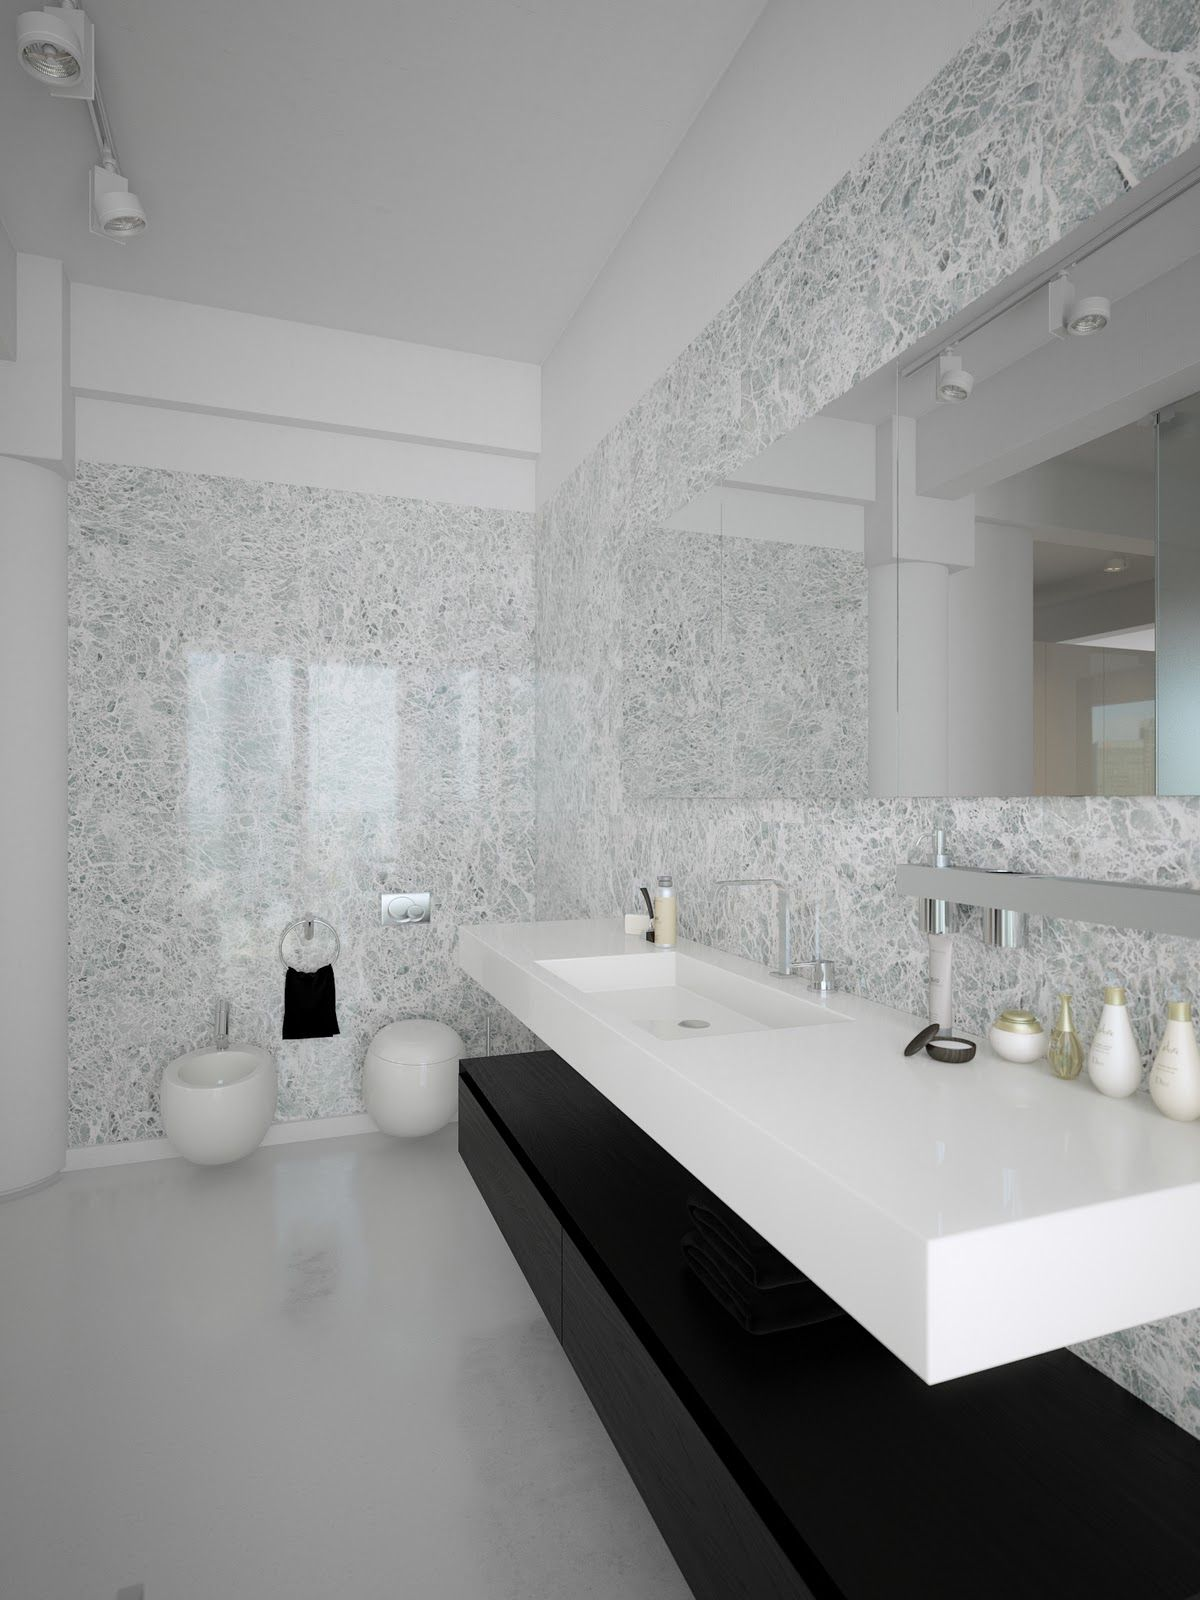 Coolest minimalist modern bathroom design contemporary for Minimalist small bathroom design